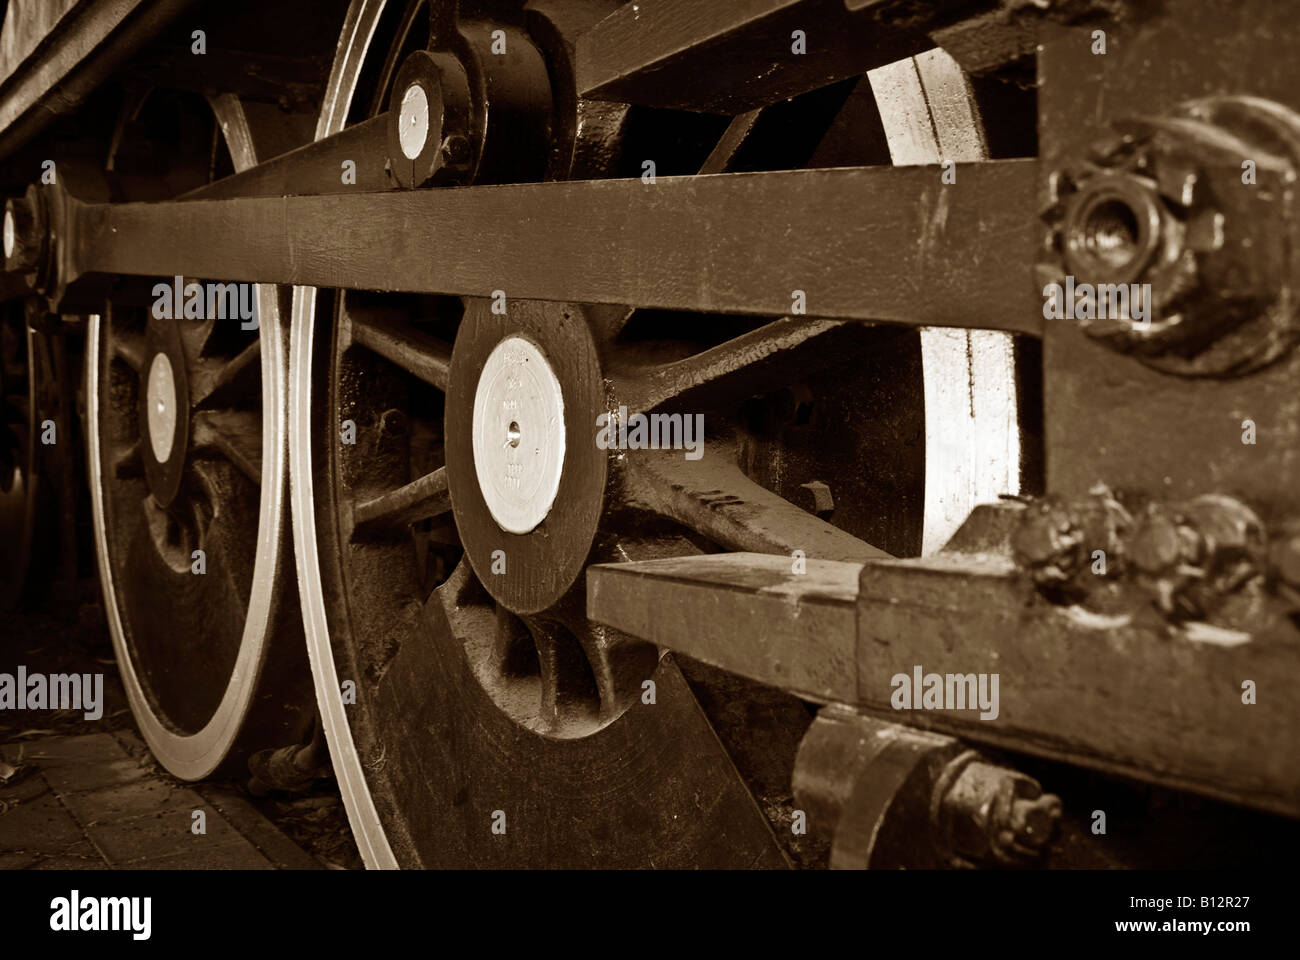 great steam train locomotive wheels closeup image in rich sepia - Stock Image